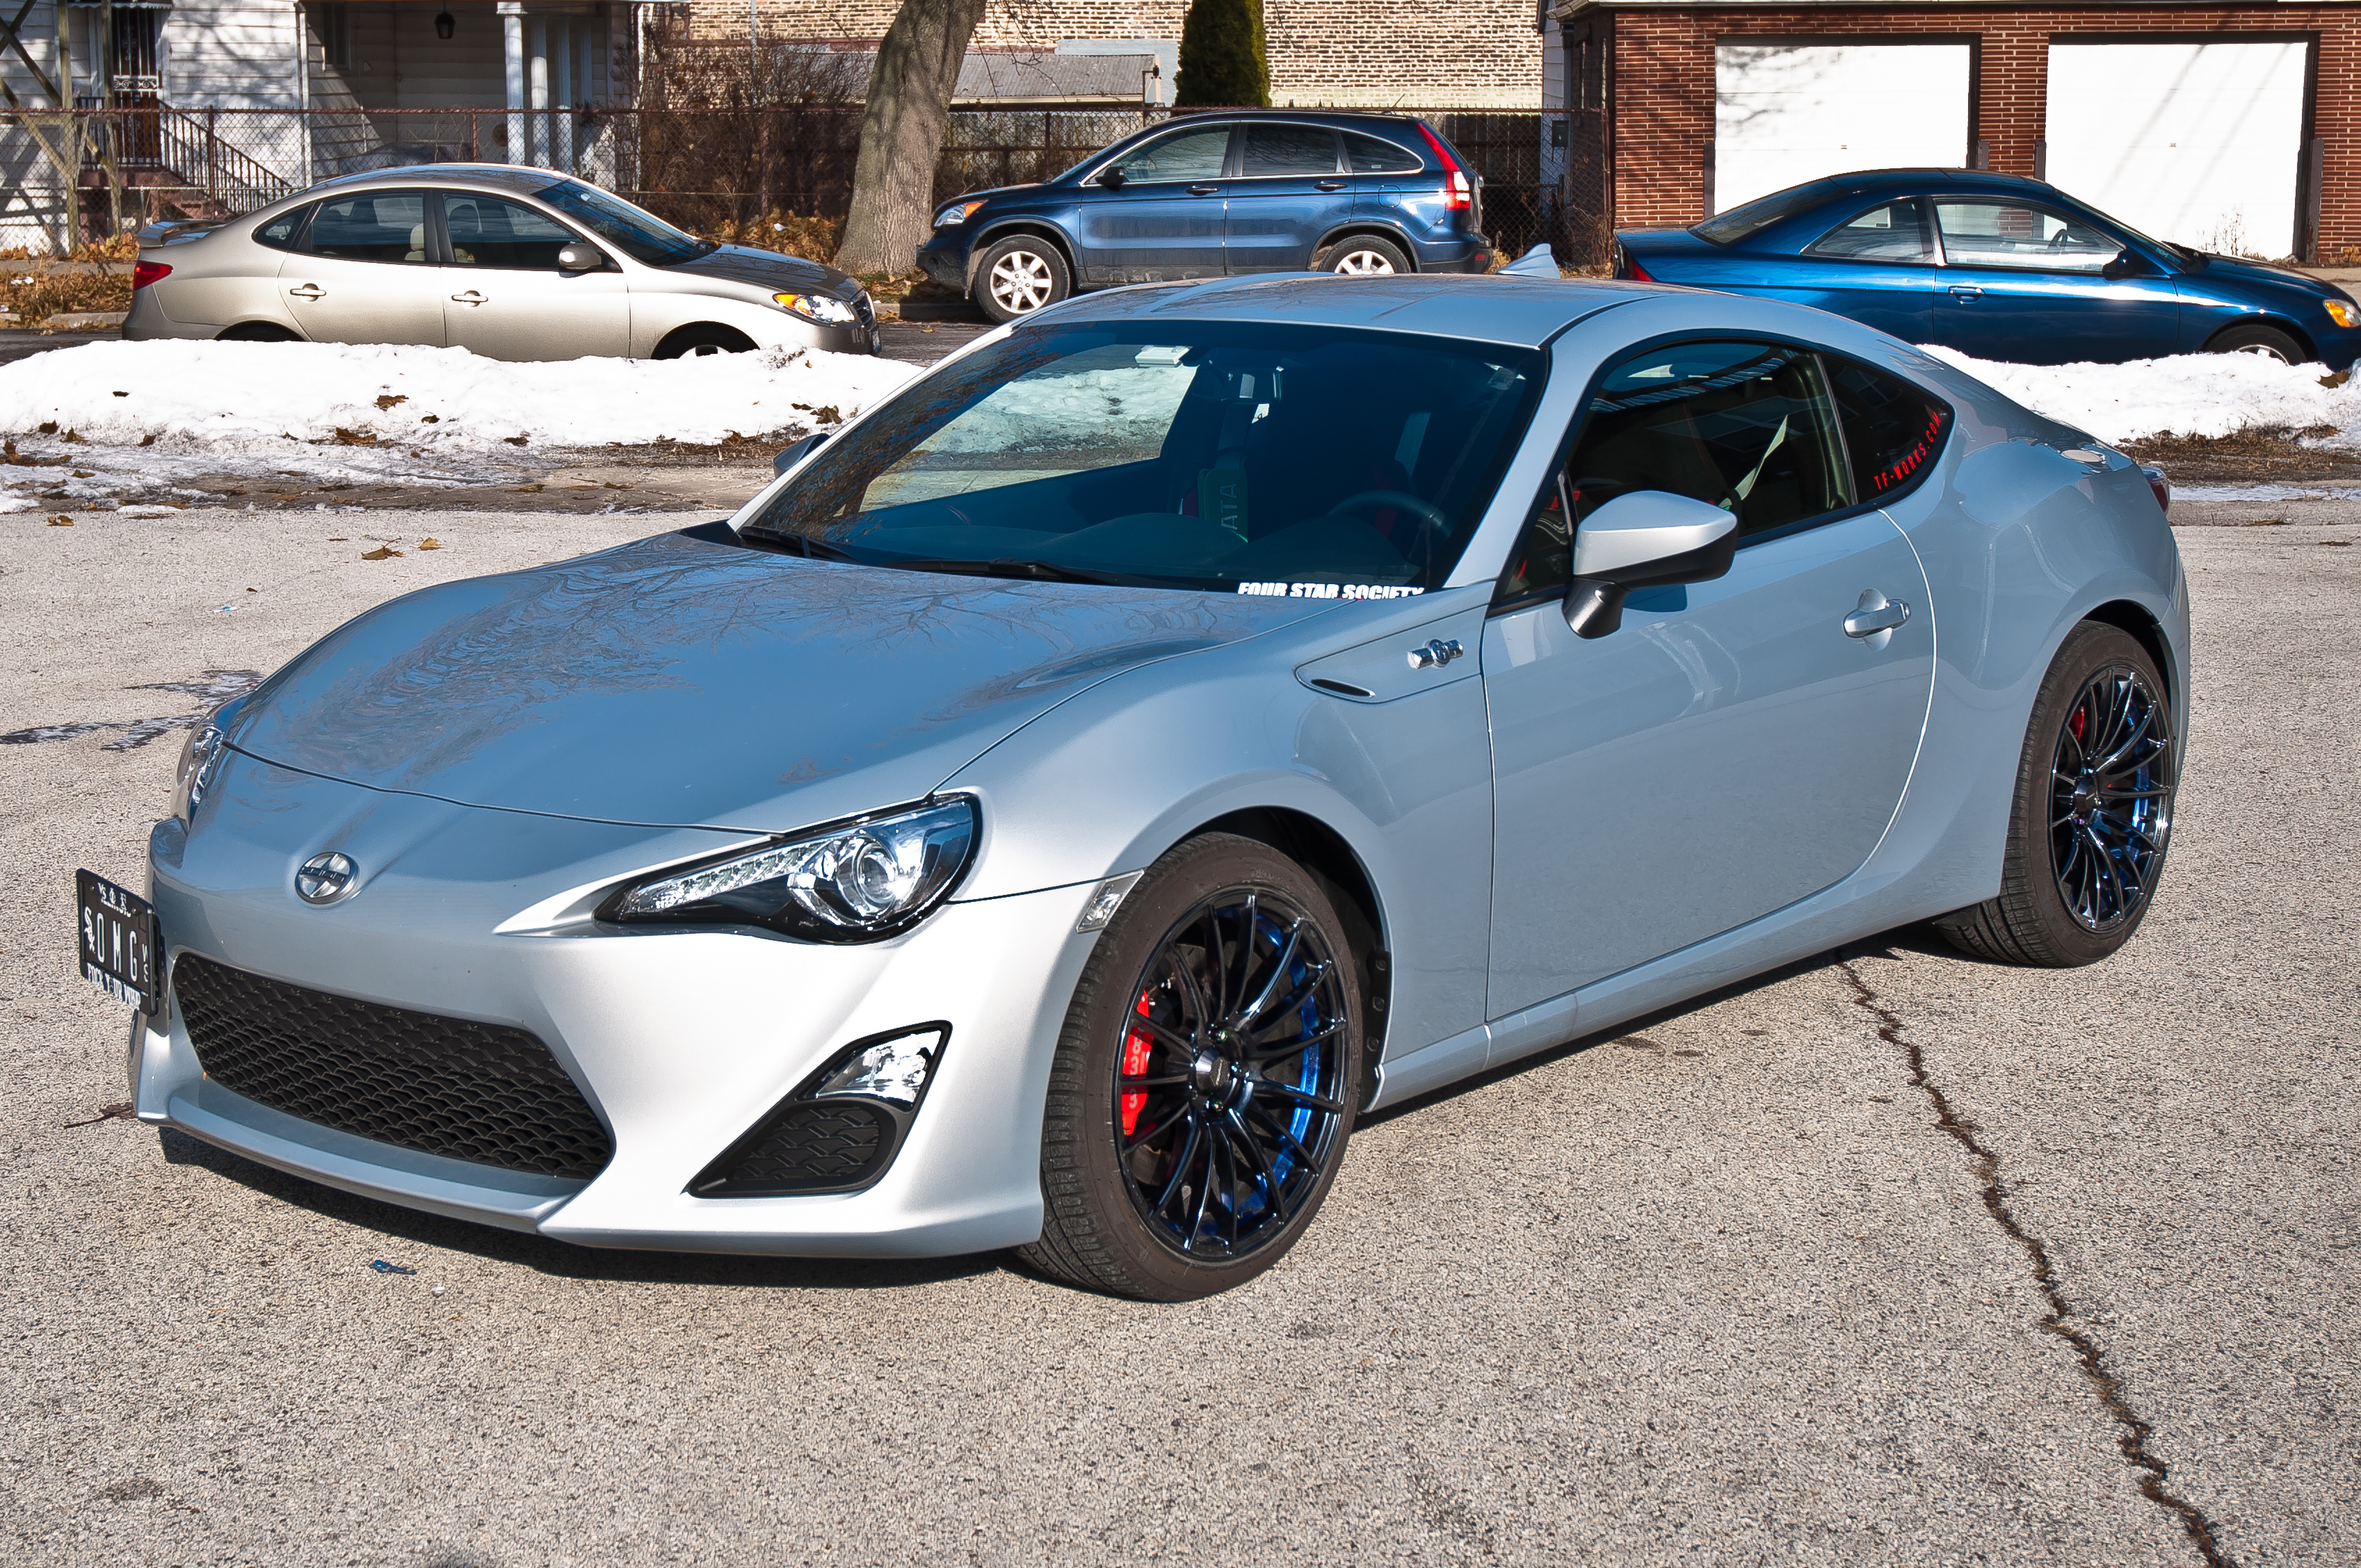 Wheels for silver ignition advice size opinions scion fr s forum subaru brz forum toyota 86 gt 86 forum as1 forum ft86club